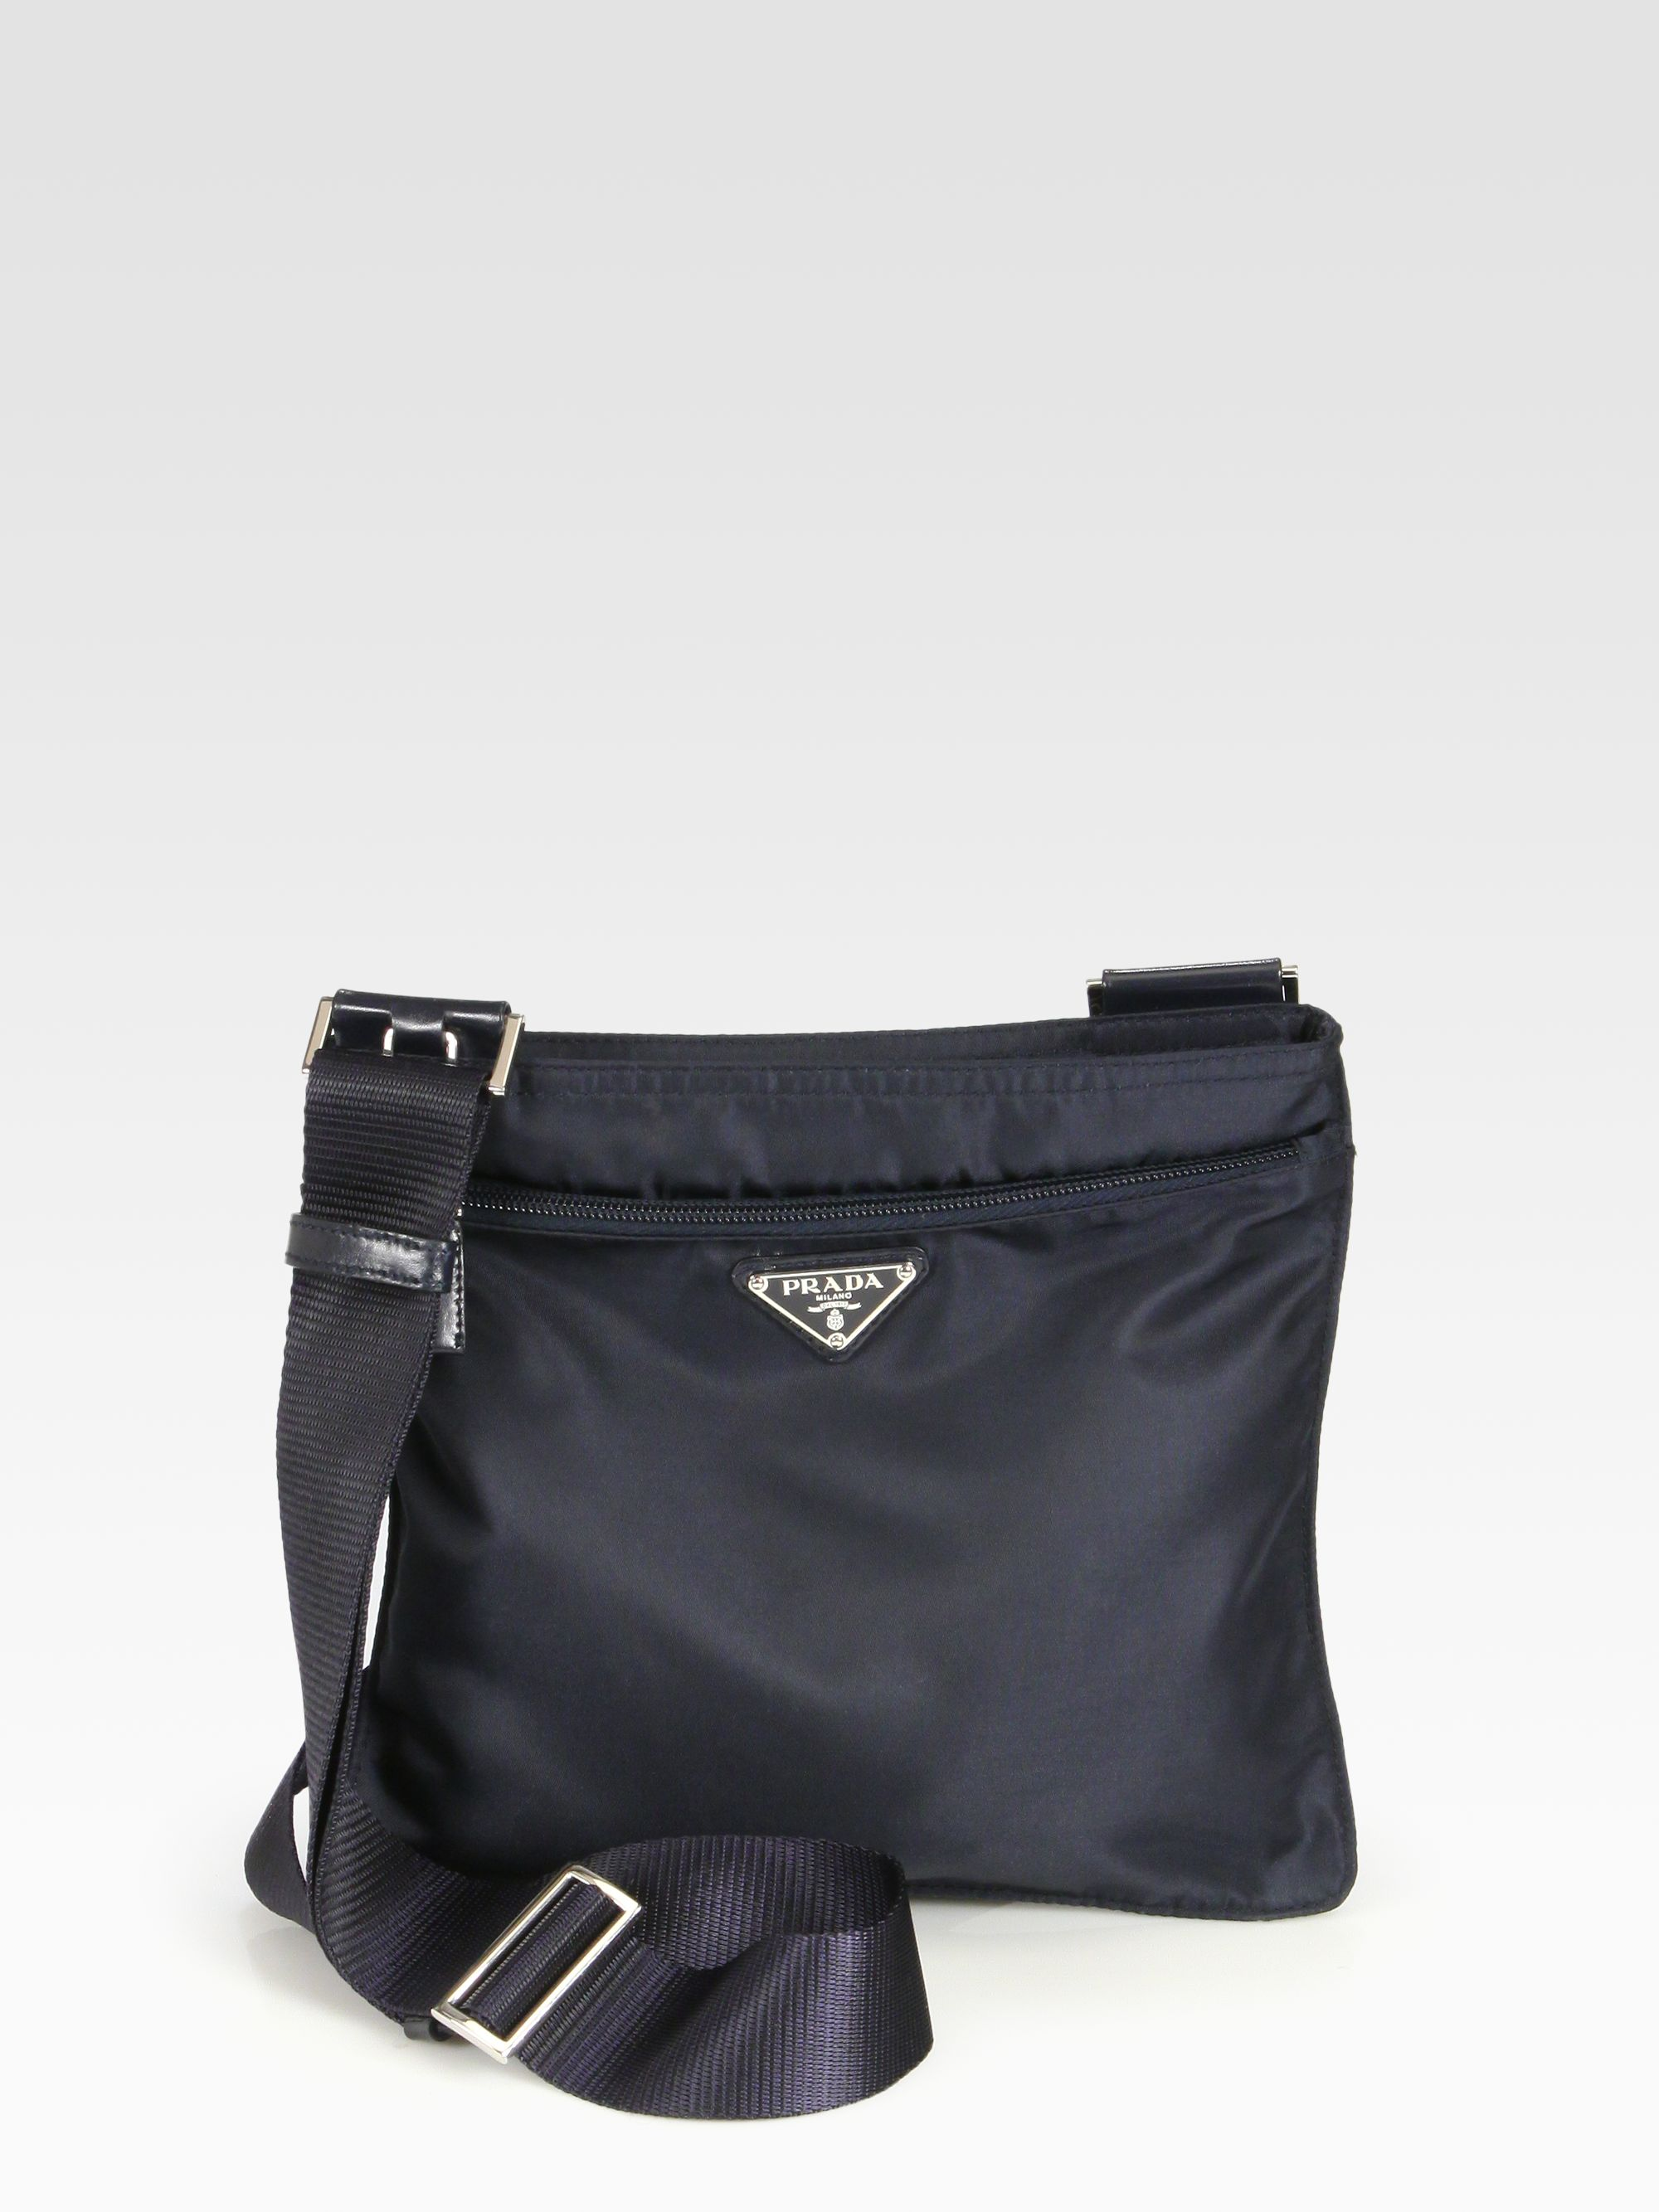 nylon prada handbags - prada messenger bag uk